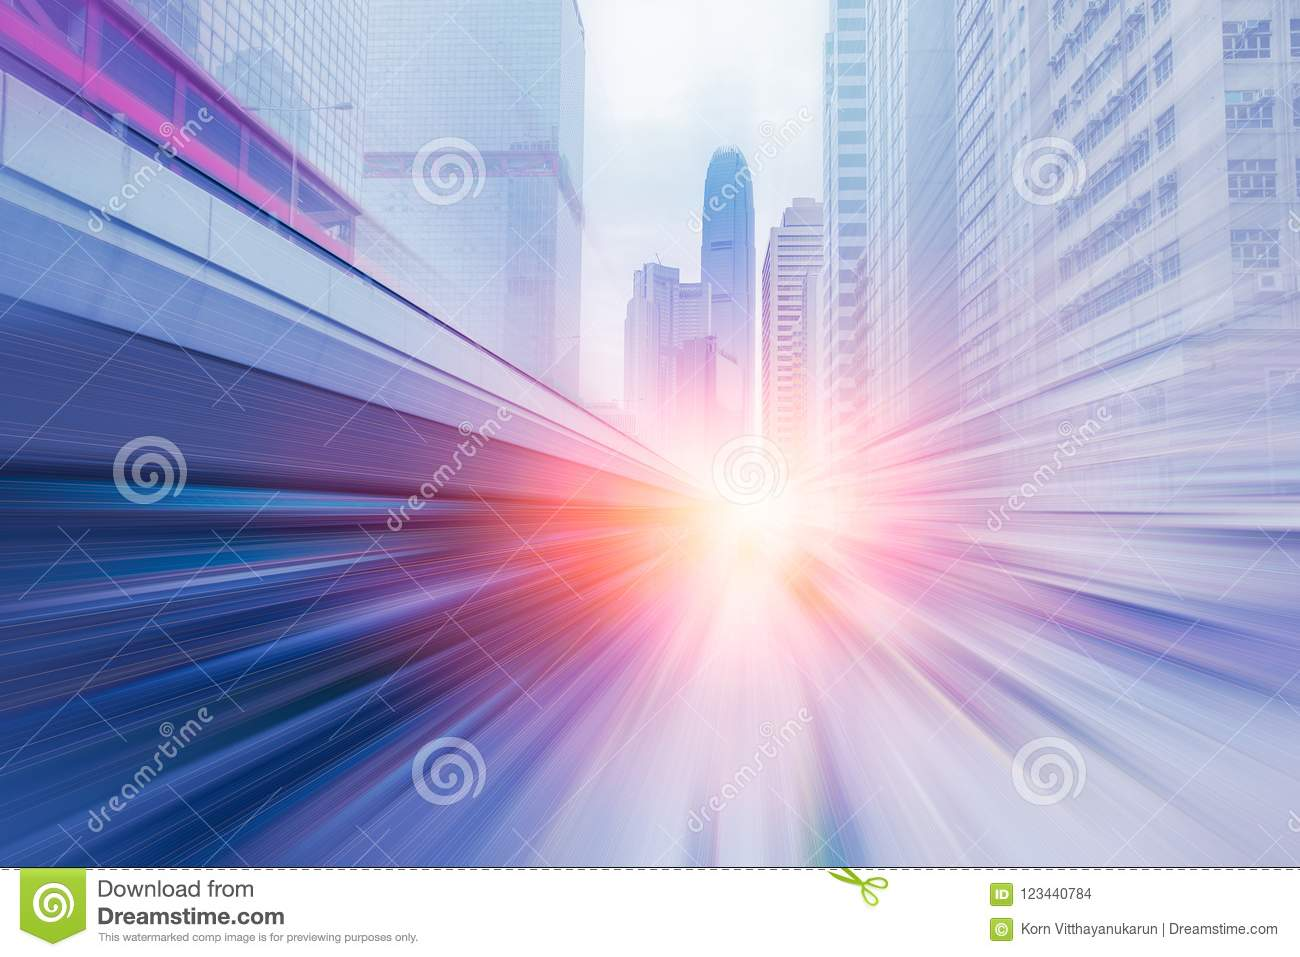 Blur high speed business forward with large capital office